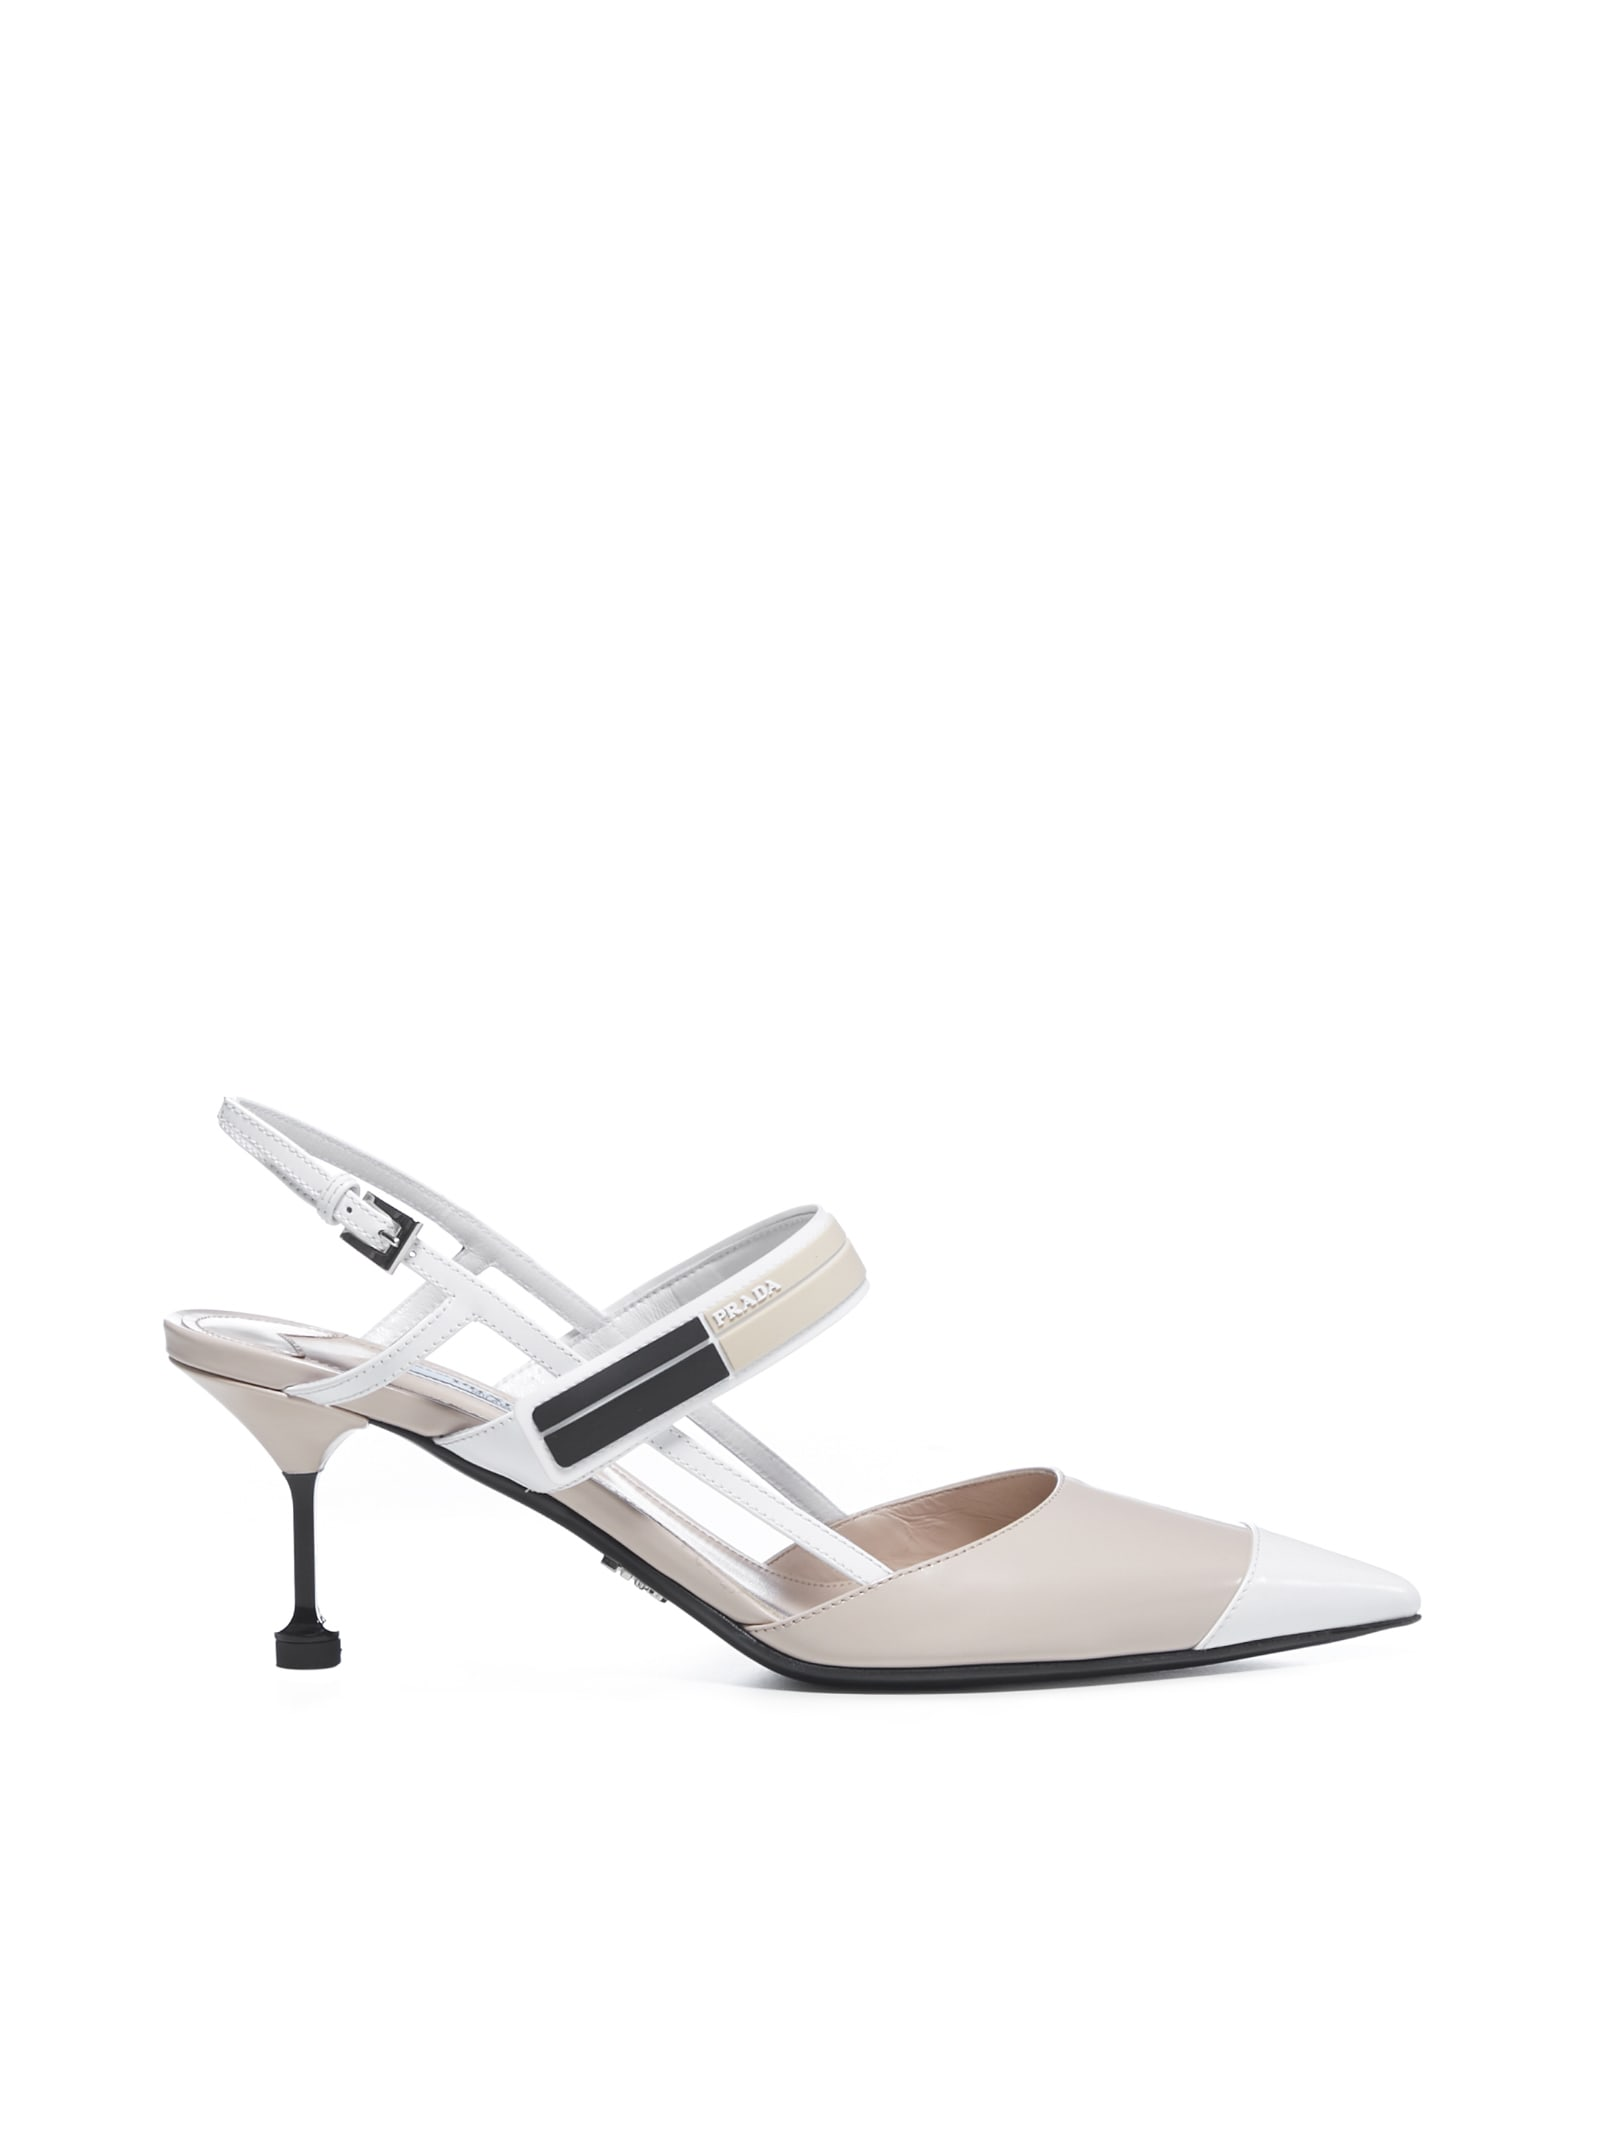 Prada Sling Back 6.5 High-heeled Shoe In Cipria Bianco